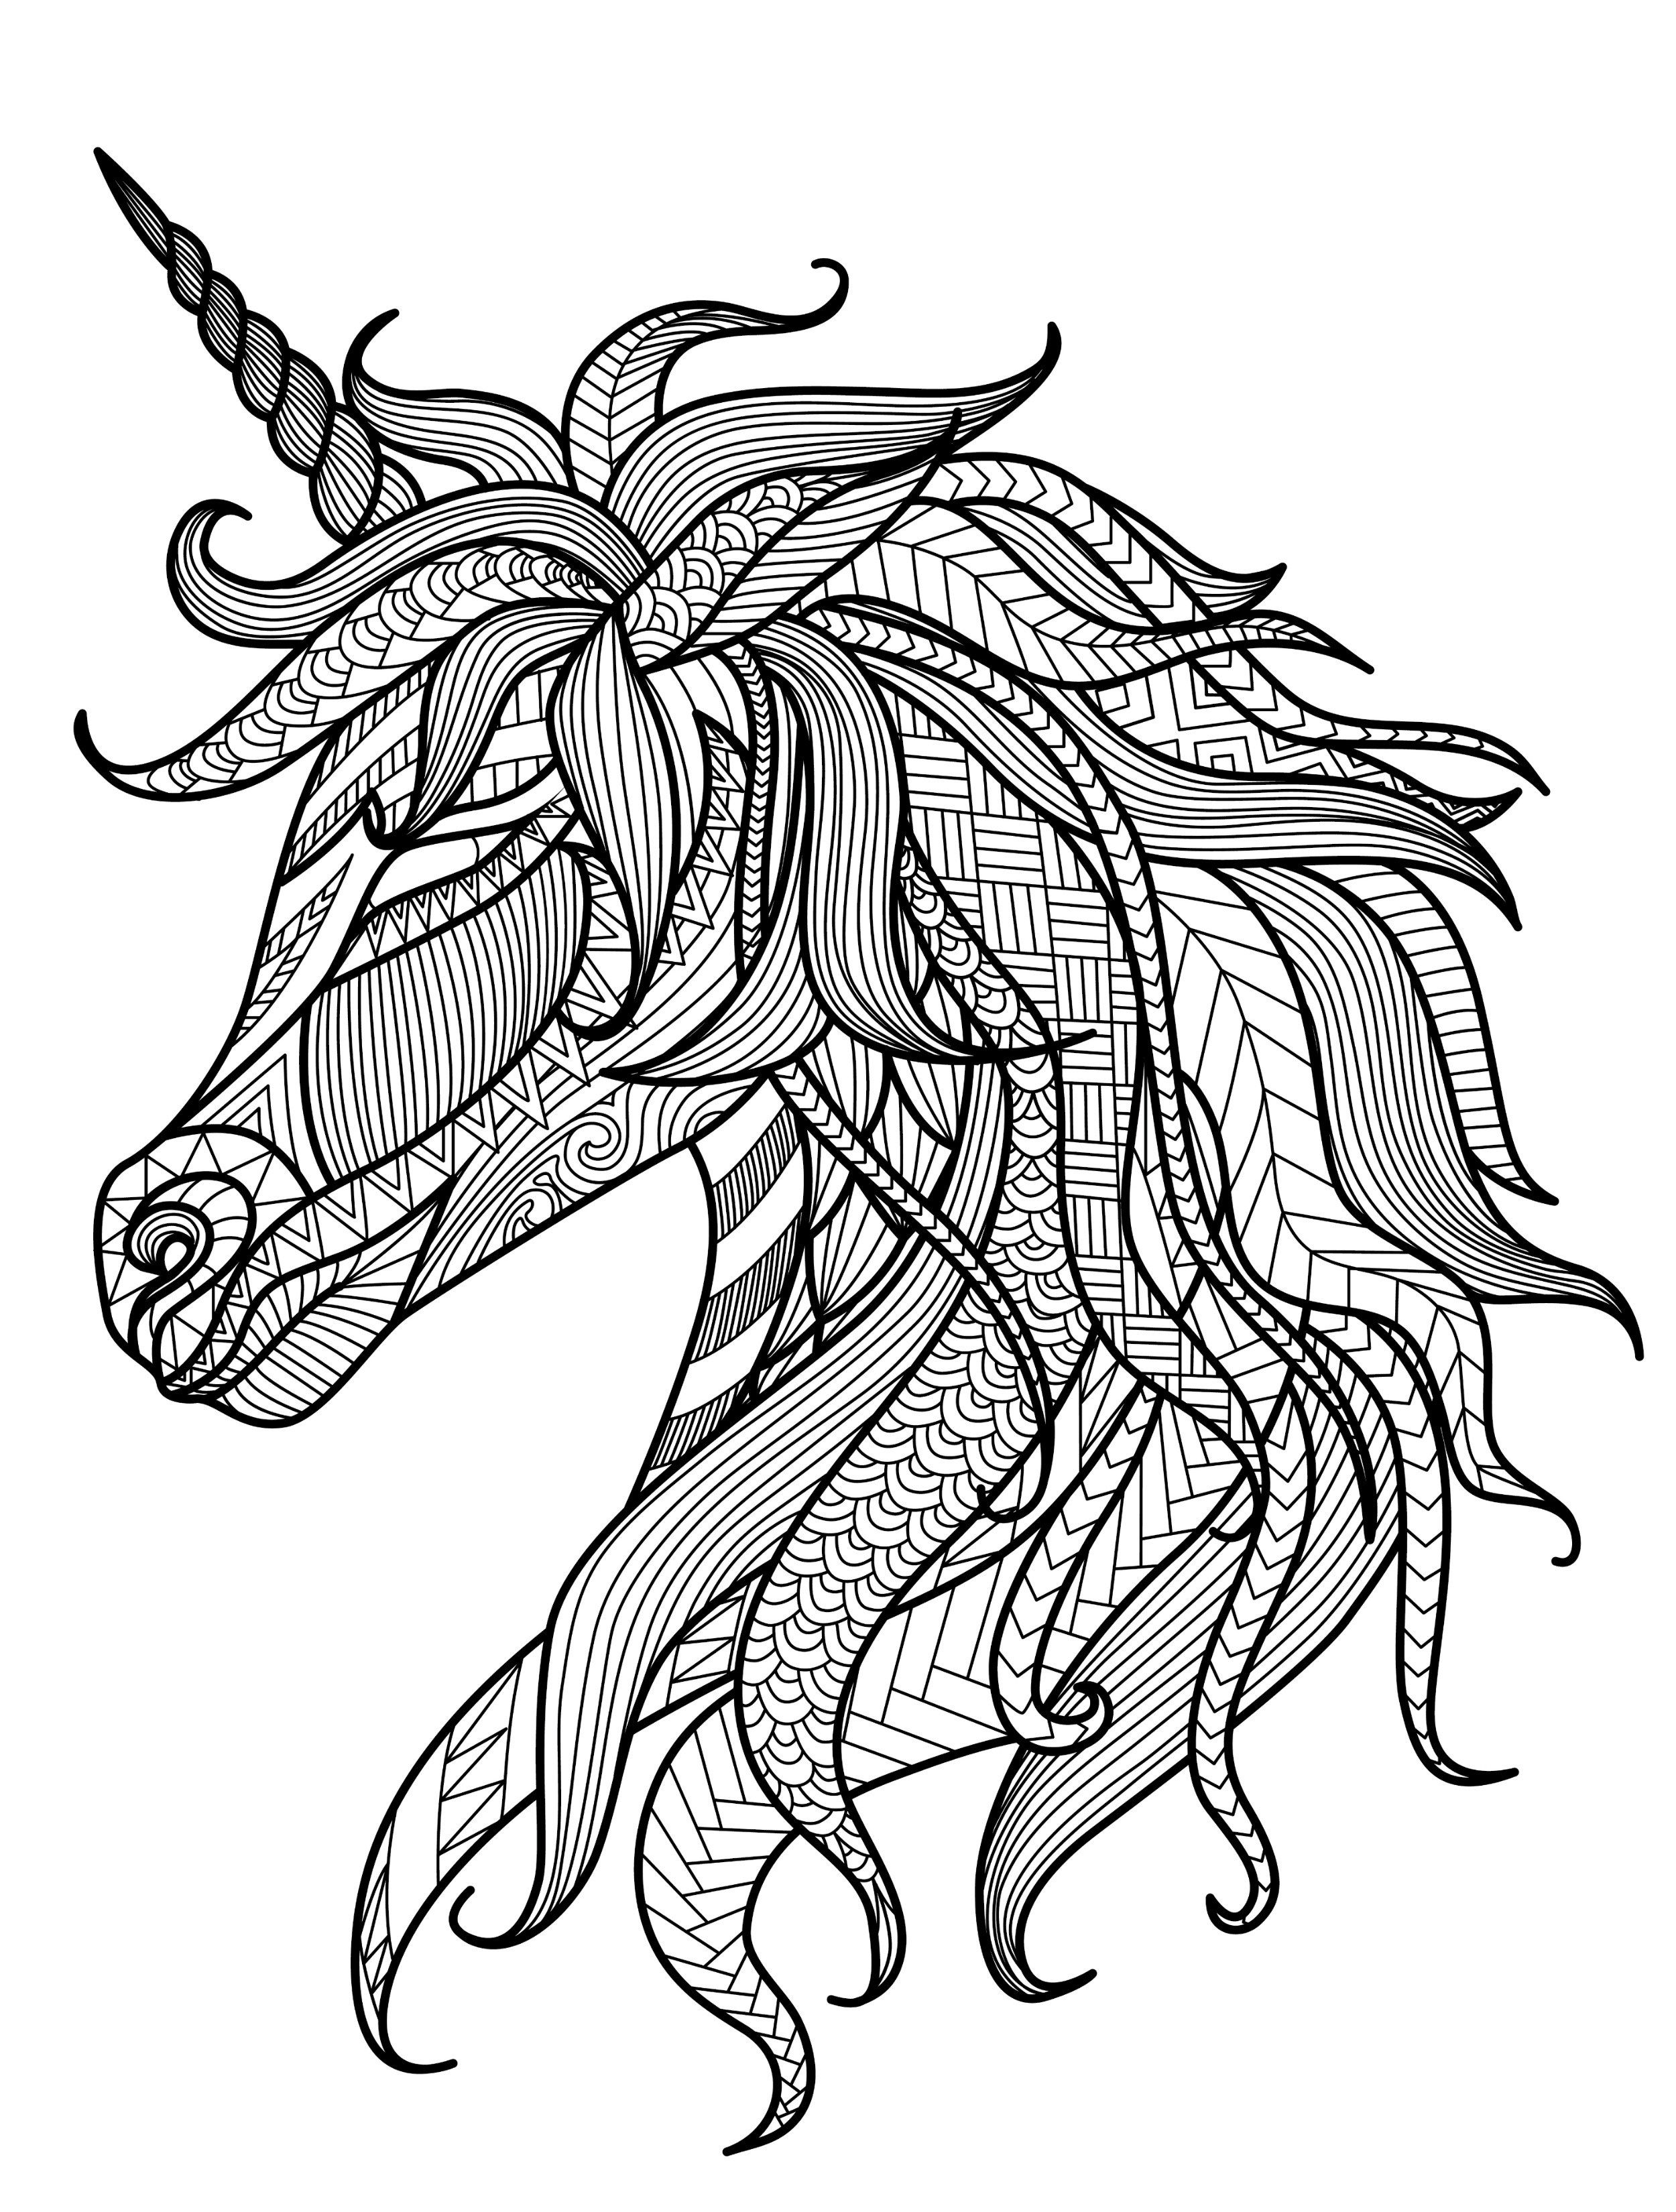 Downloadable Unicorn Coloring Pages